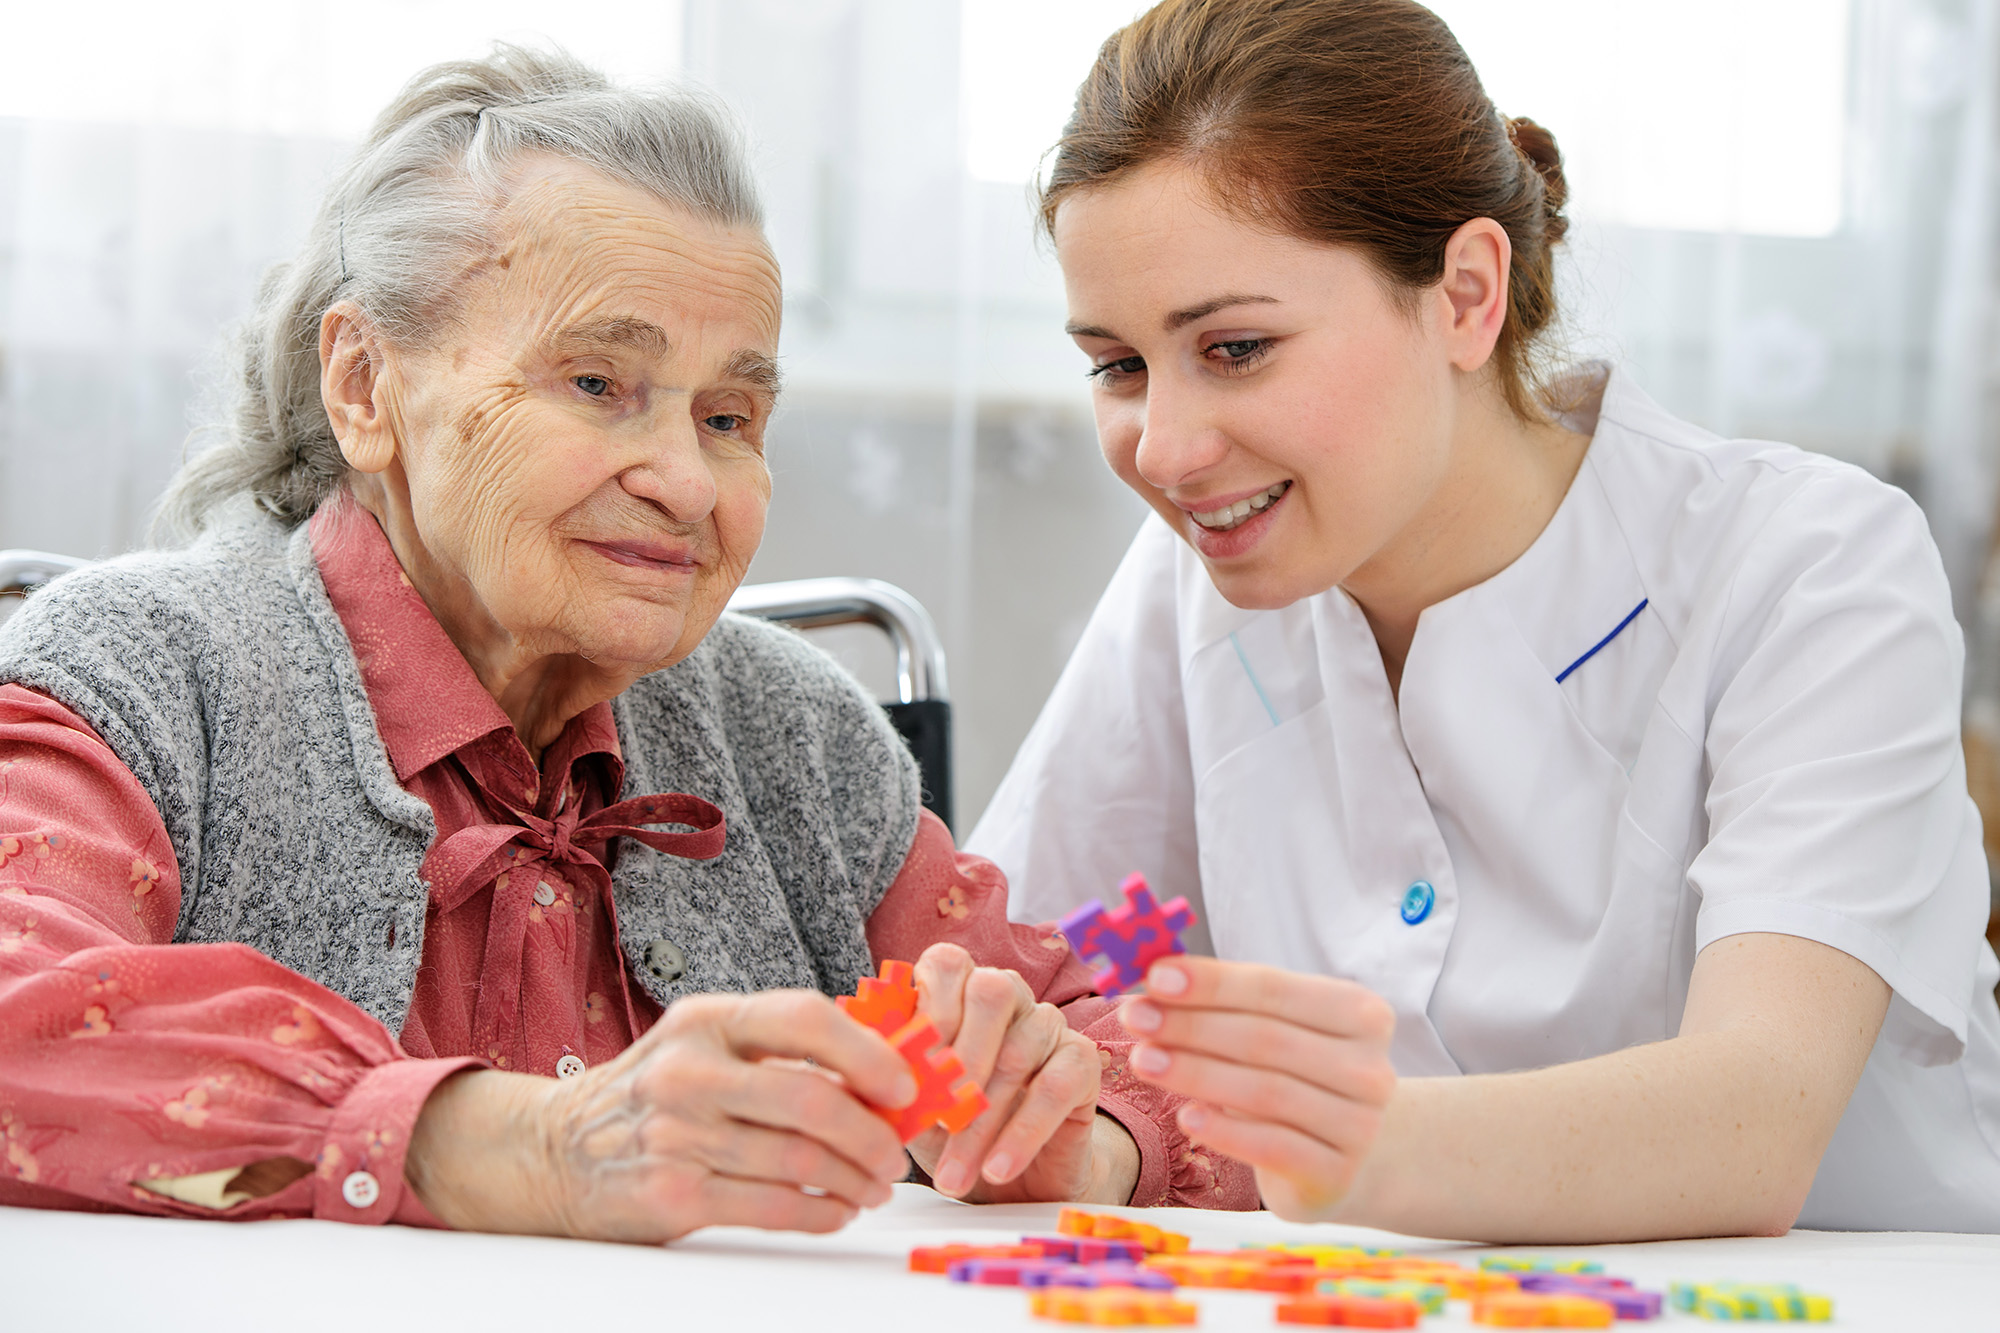 Stock photo of an elder care nurse playing a jigsaw puzzle with a senior woman in a nursing home.